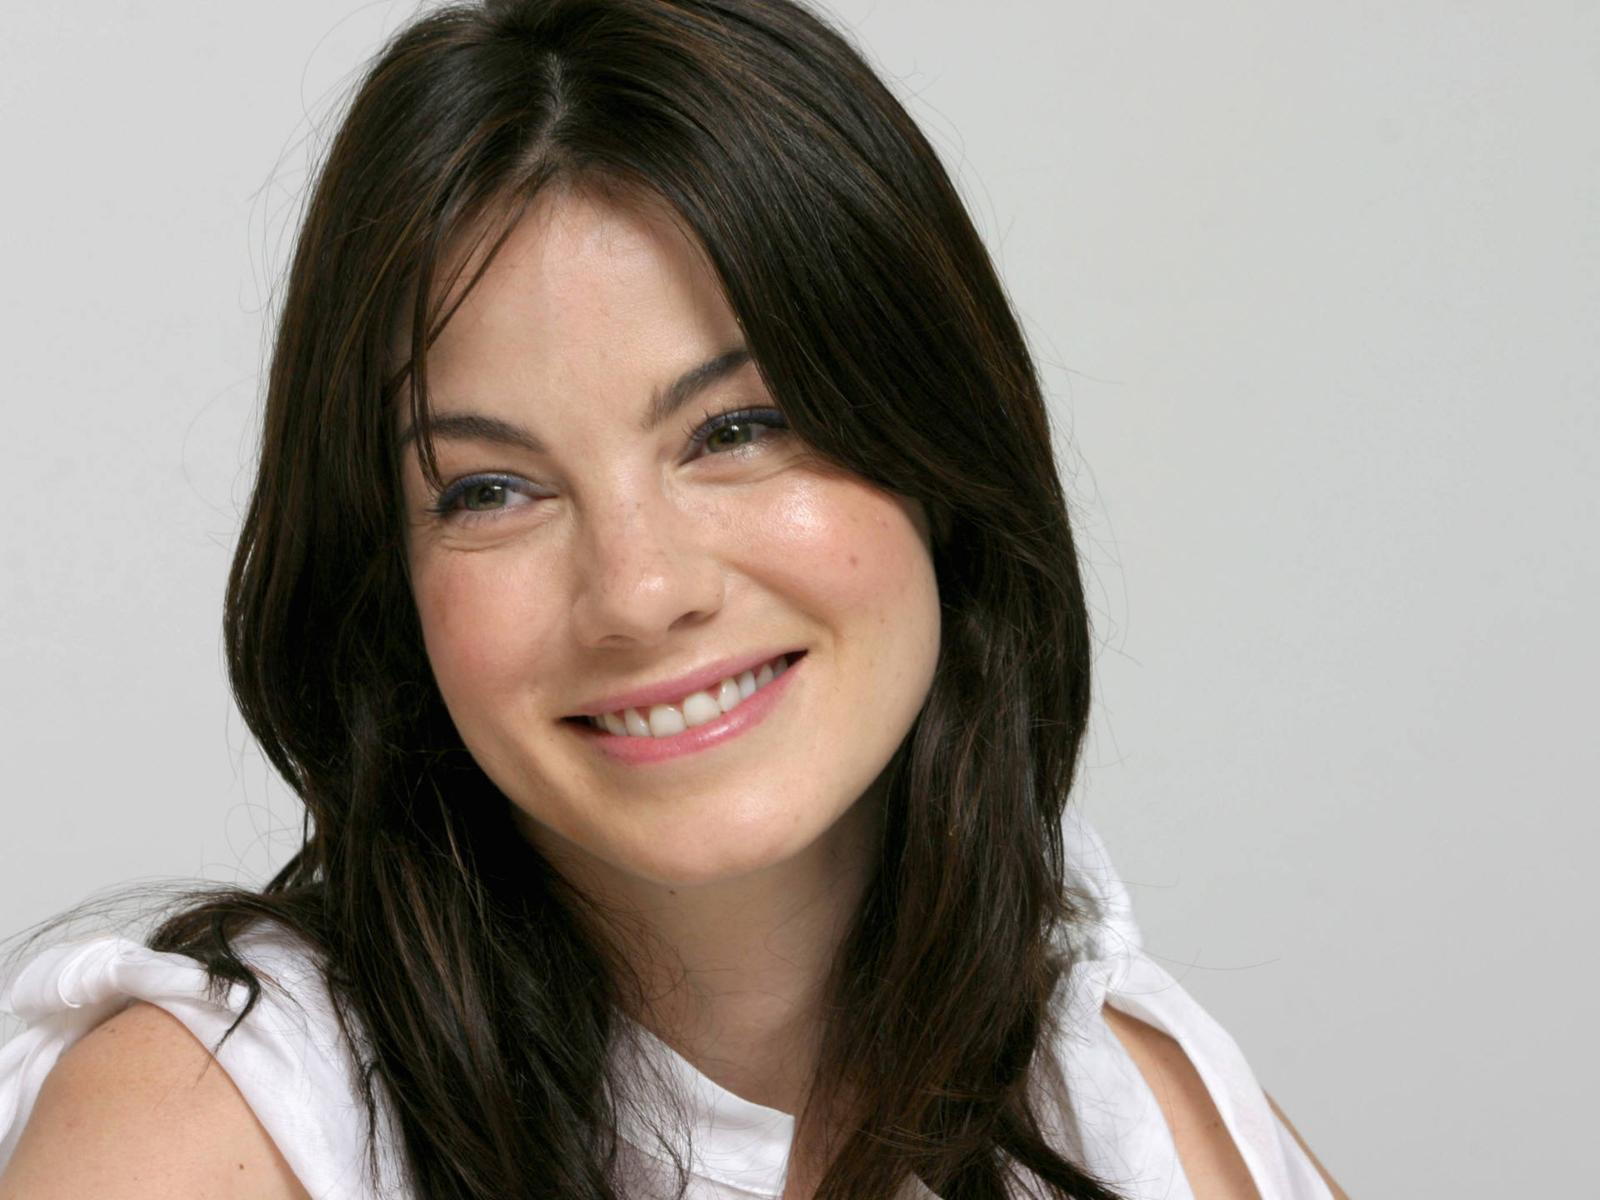 1600x1200 - Michelle Monaghan Wallpapers 15